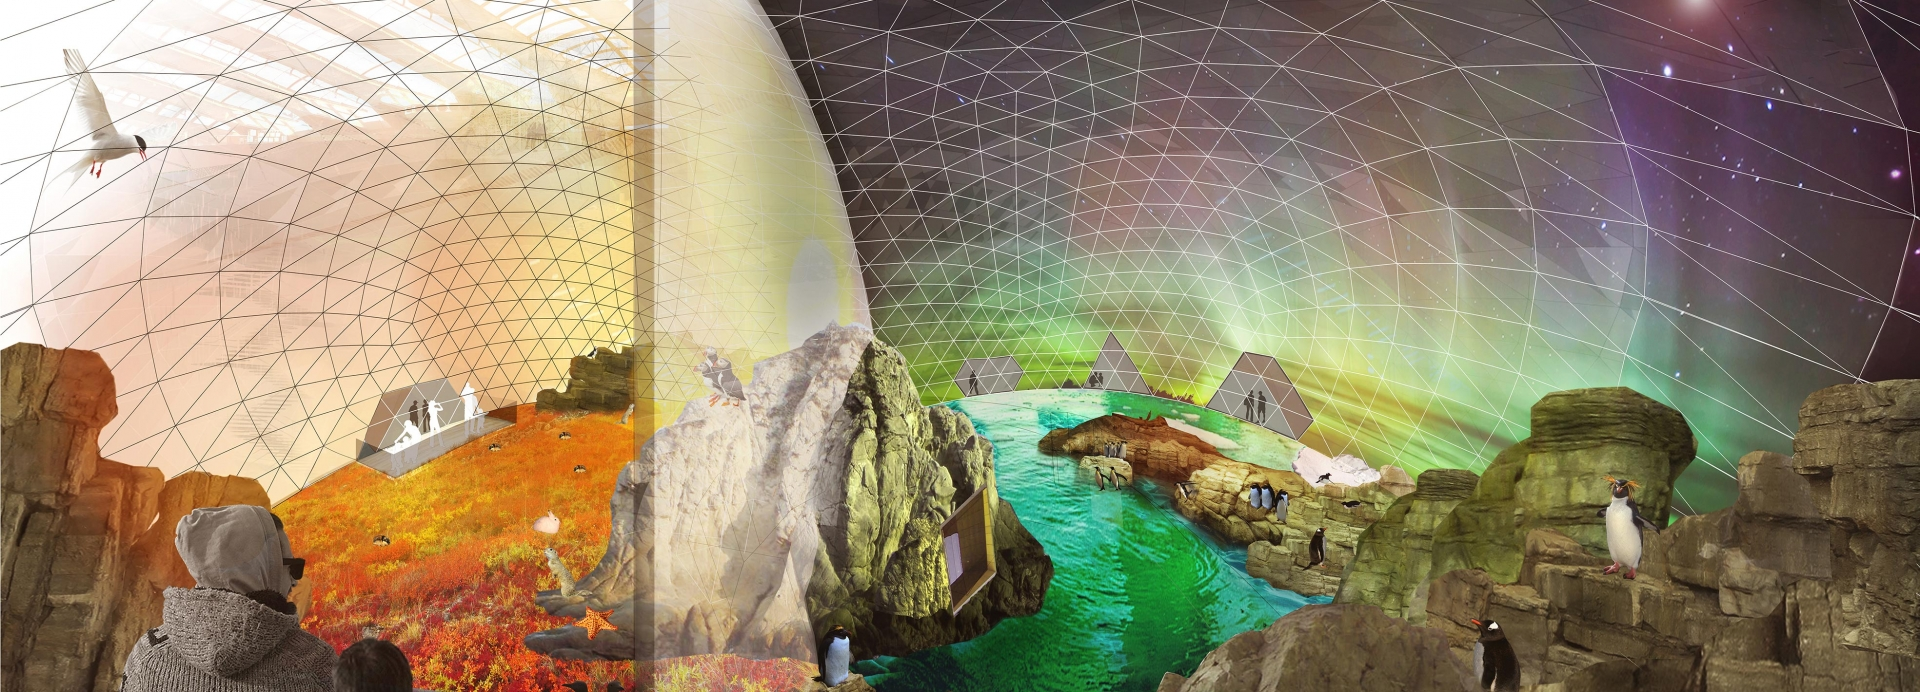 Design competition for the renewal of the Montreal Biodome